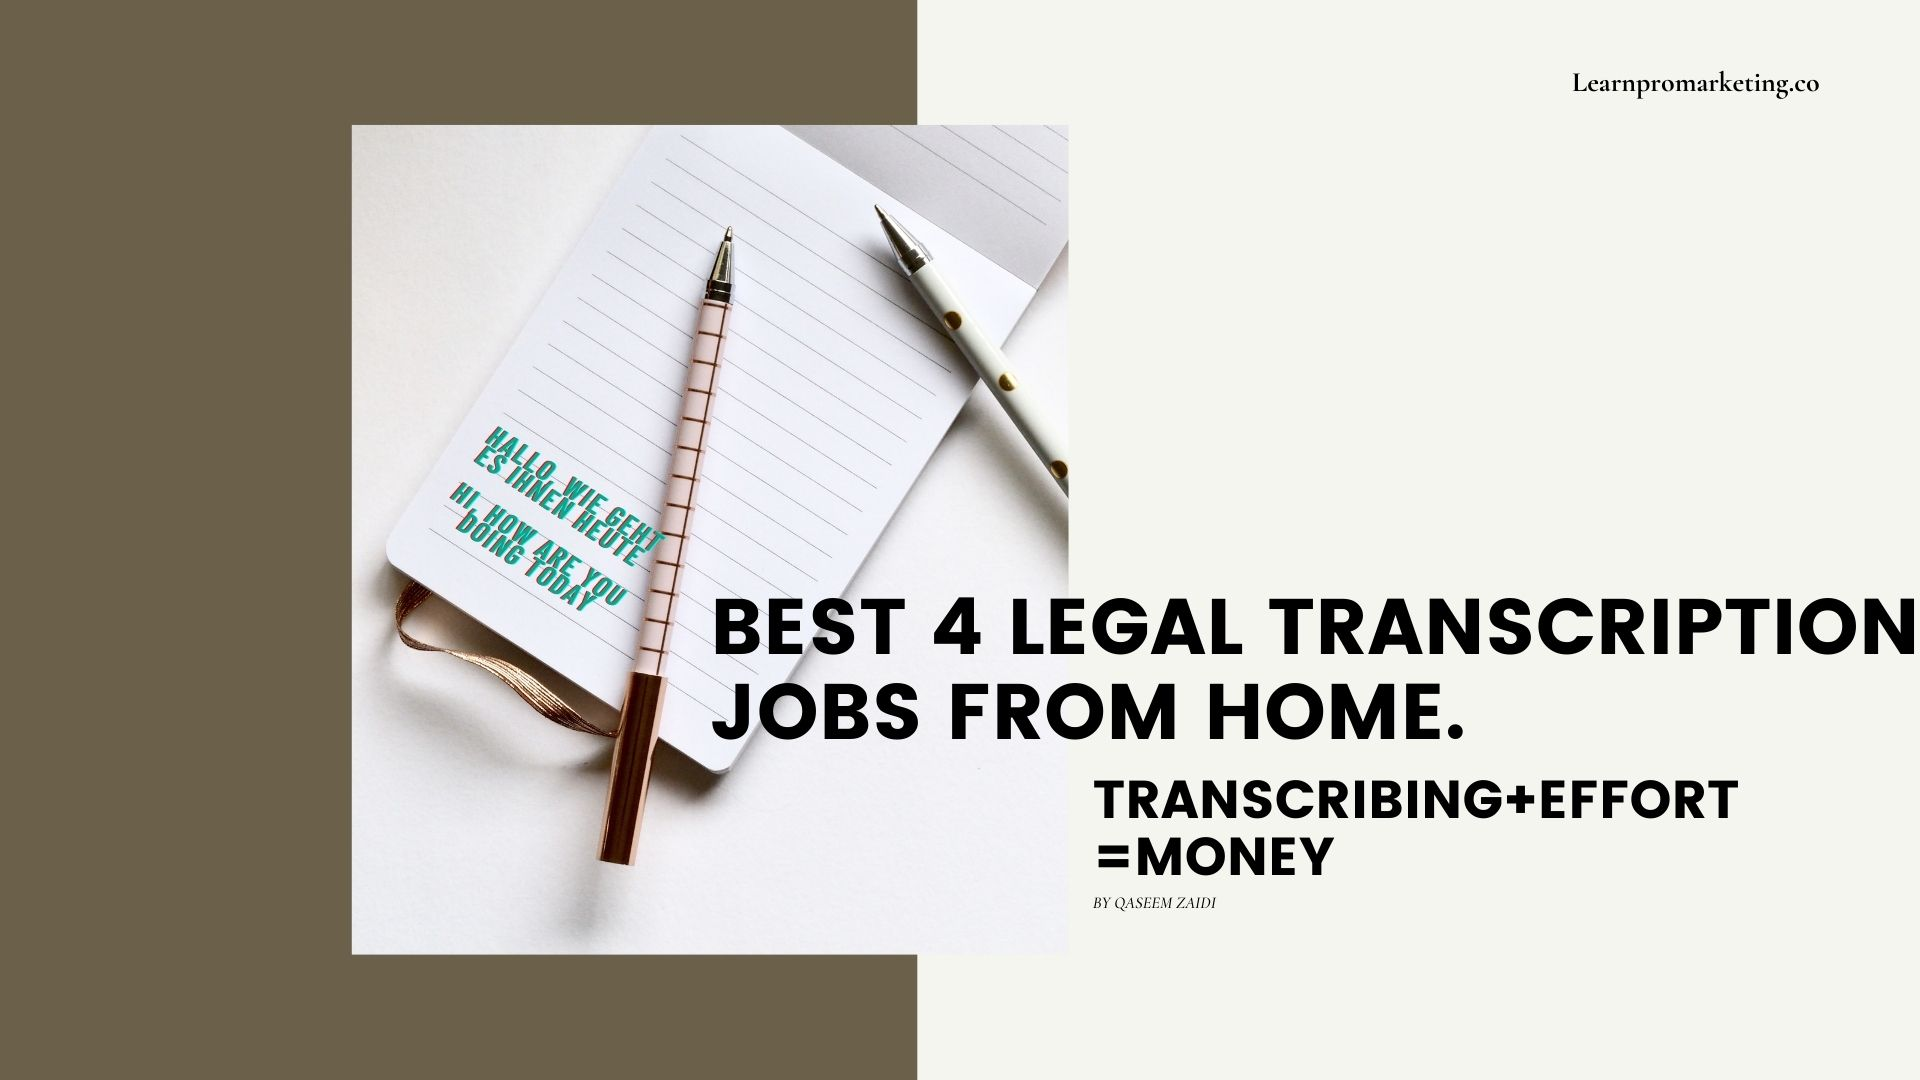 Best 4 Legal Transcription Jobs From Home.